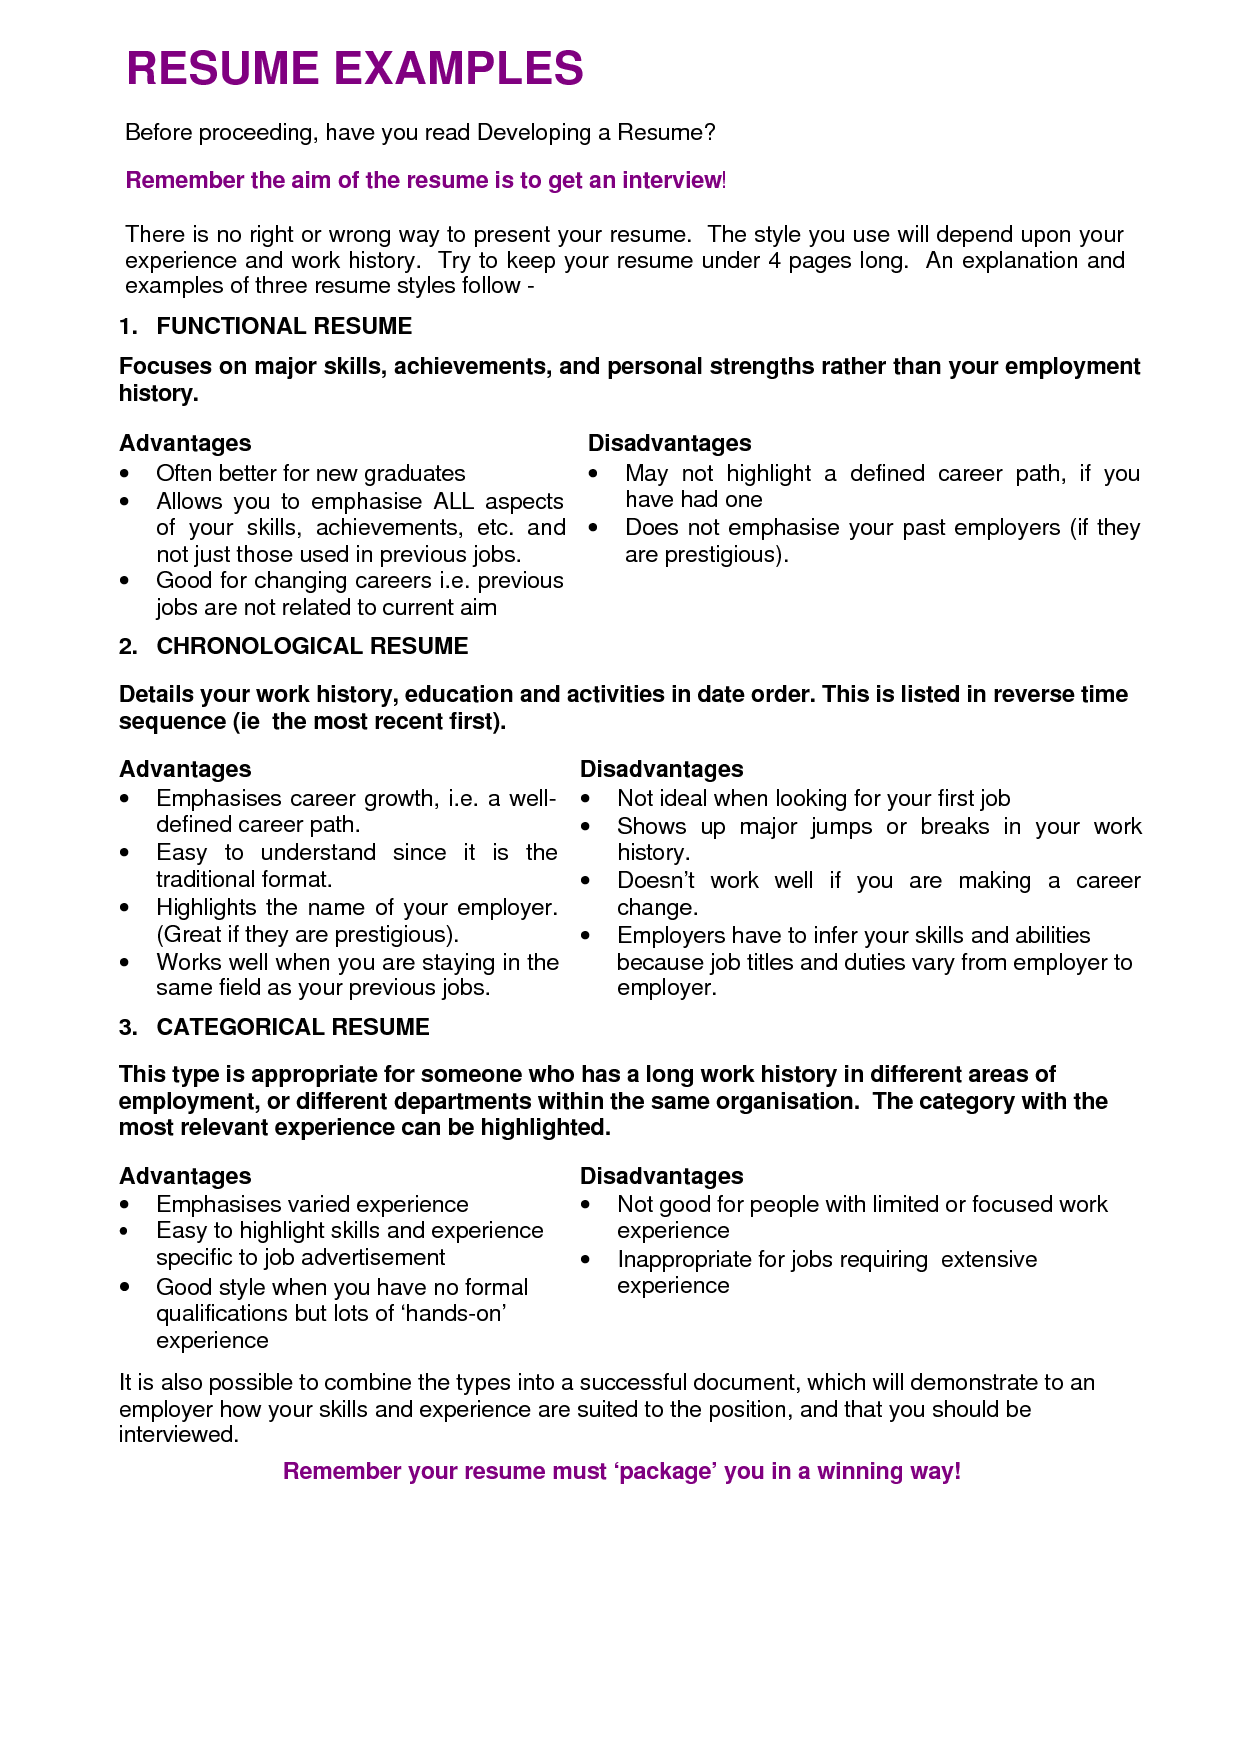 resume objective examples best templateresume objective examples application letter sample - Writing A Resume Objective